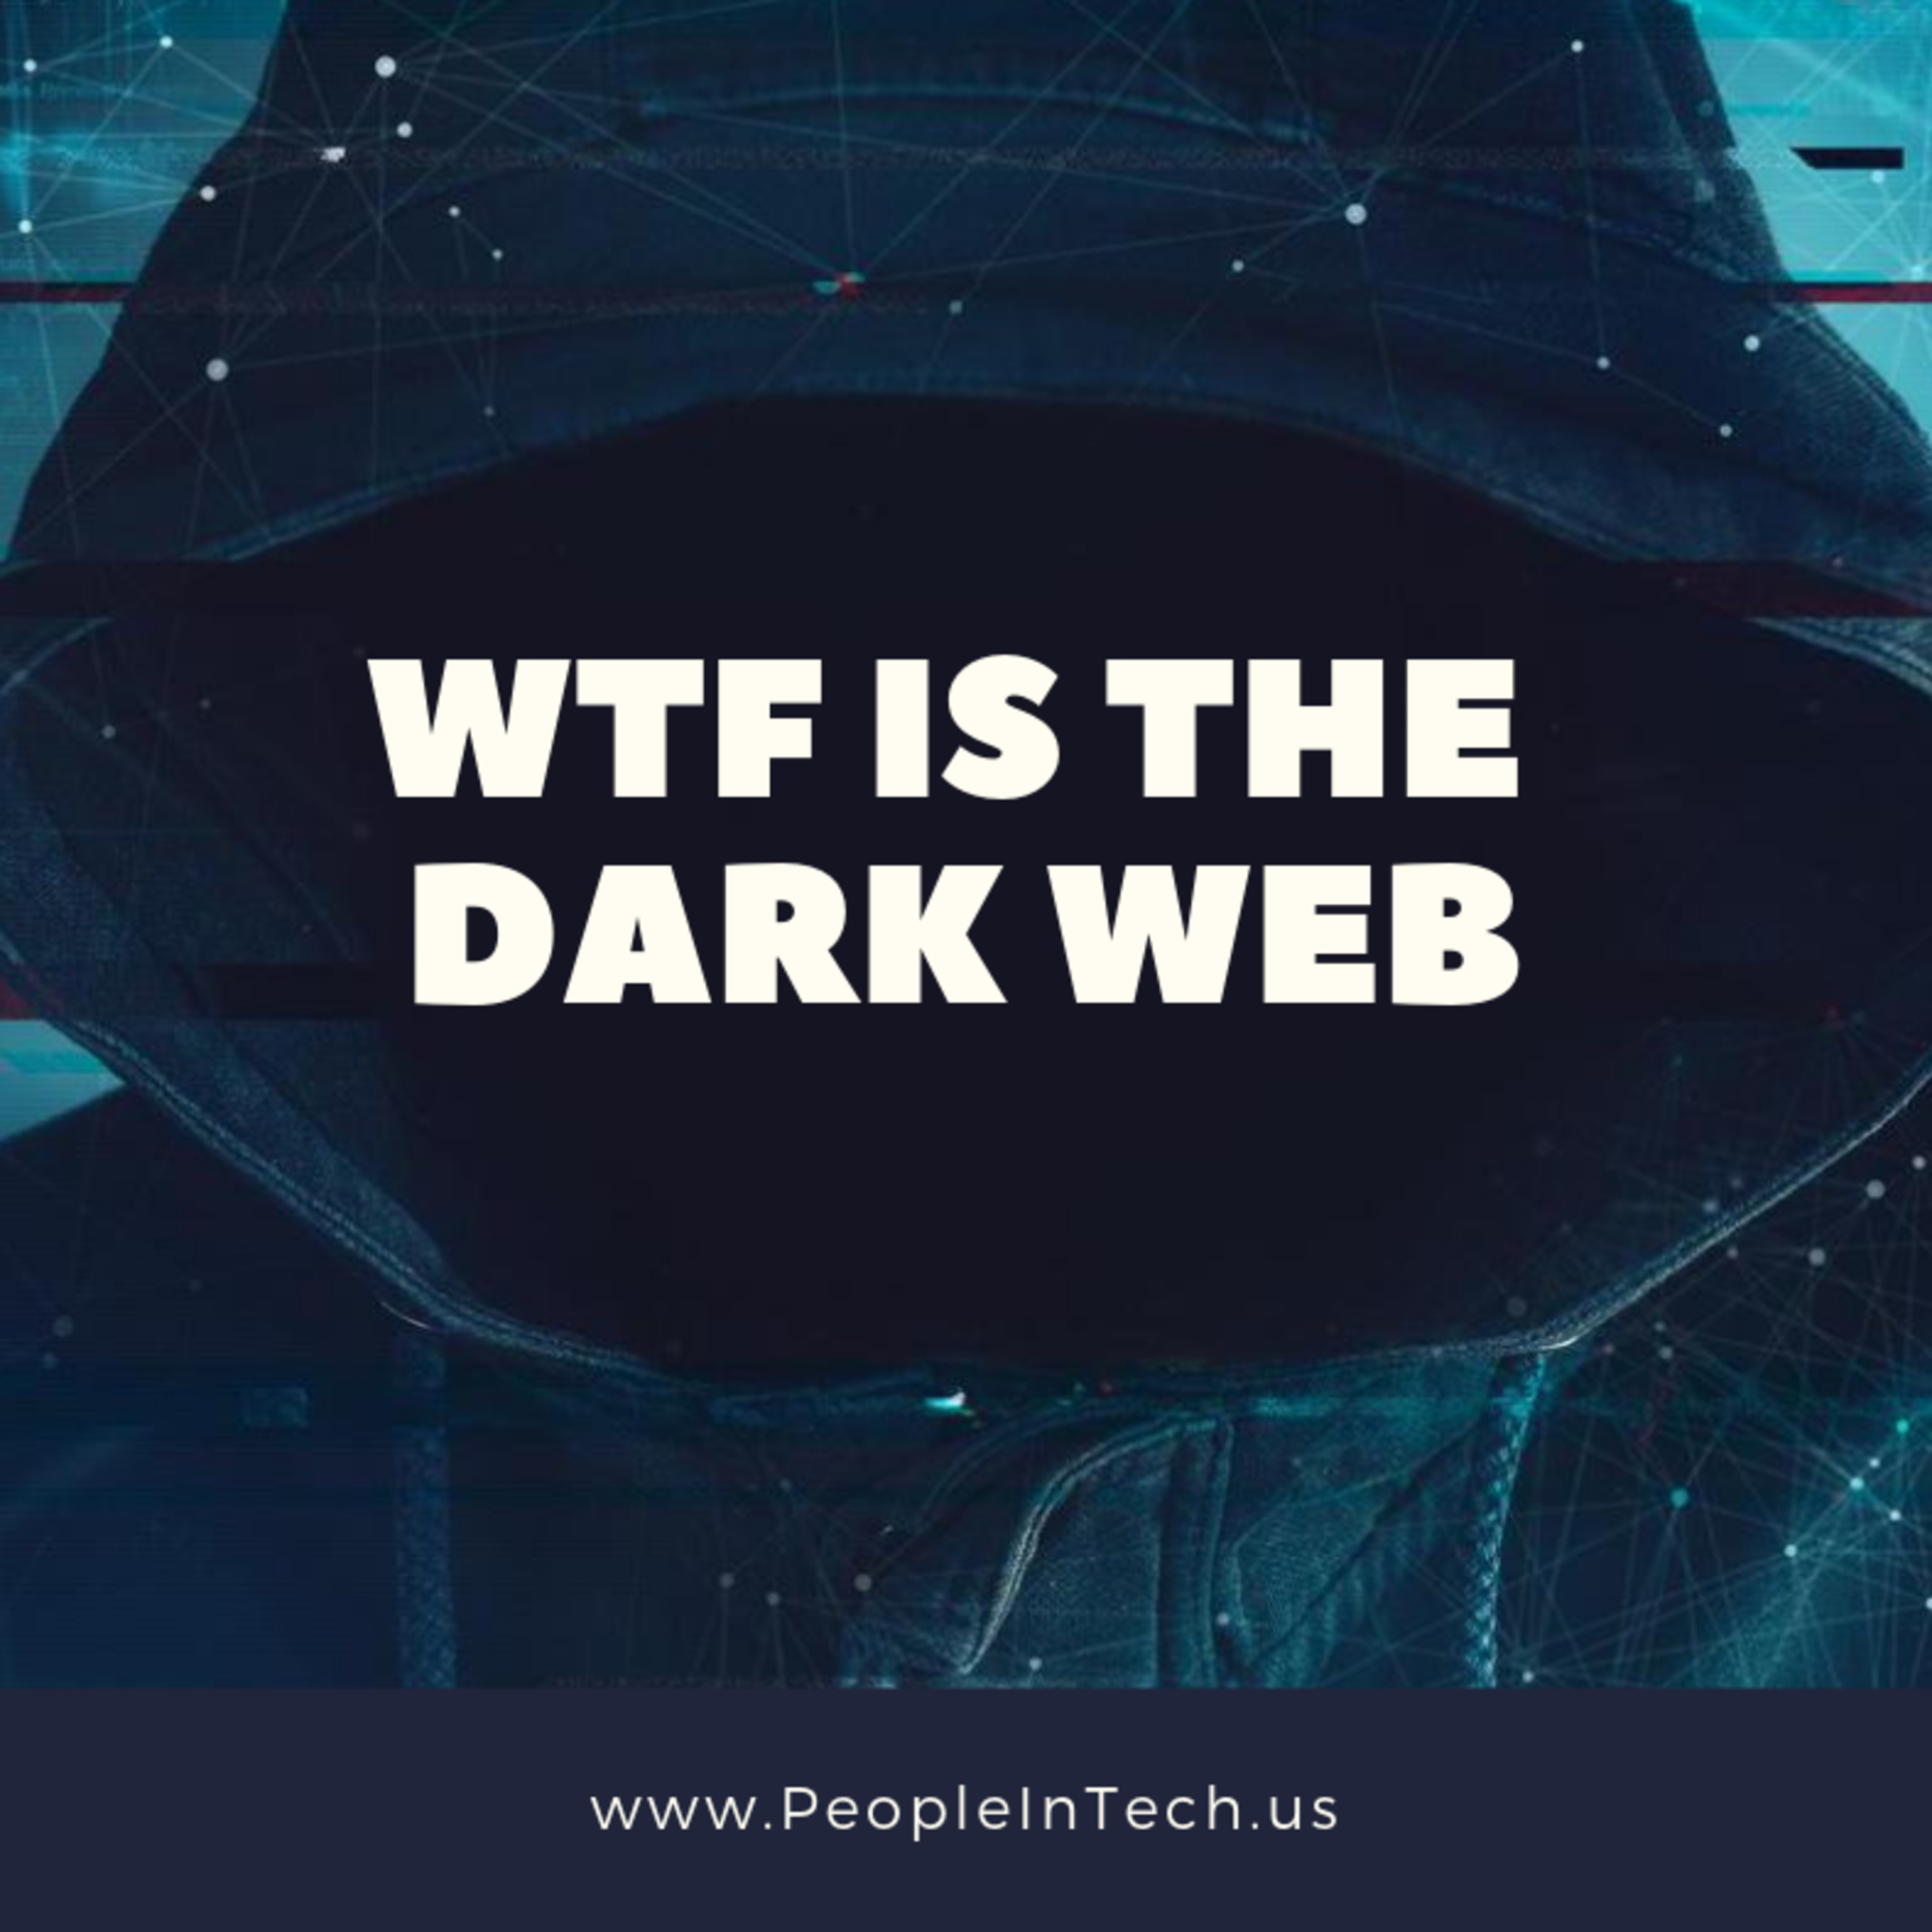 WTF is the Dark Web - 04/30/19